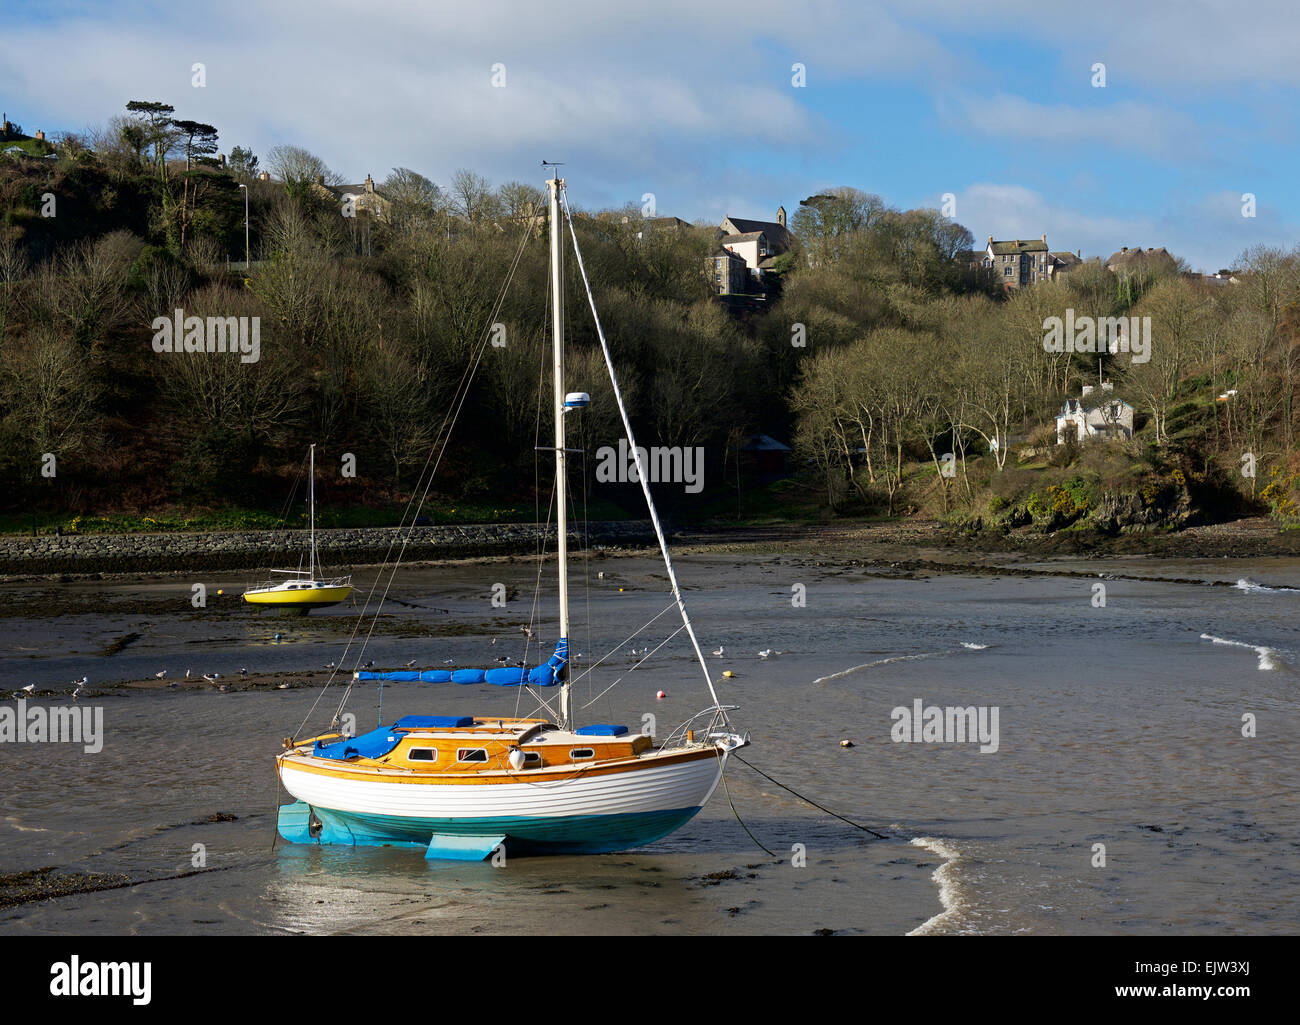 Boats on the estuary of the River Gwaun, at Lower Fishguard, Pembrokeshiire, Wales UK - Stock Image